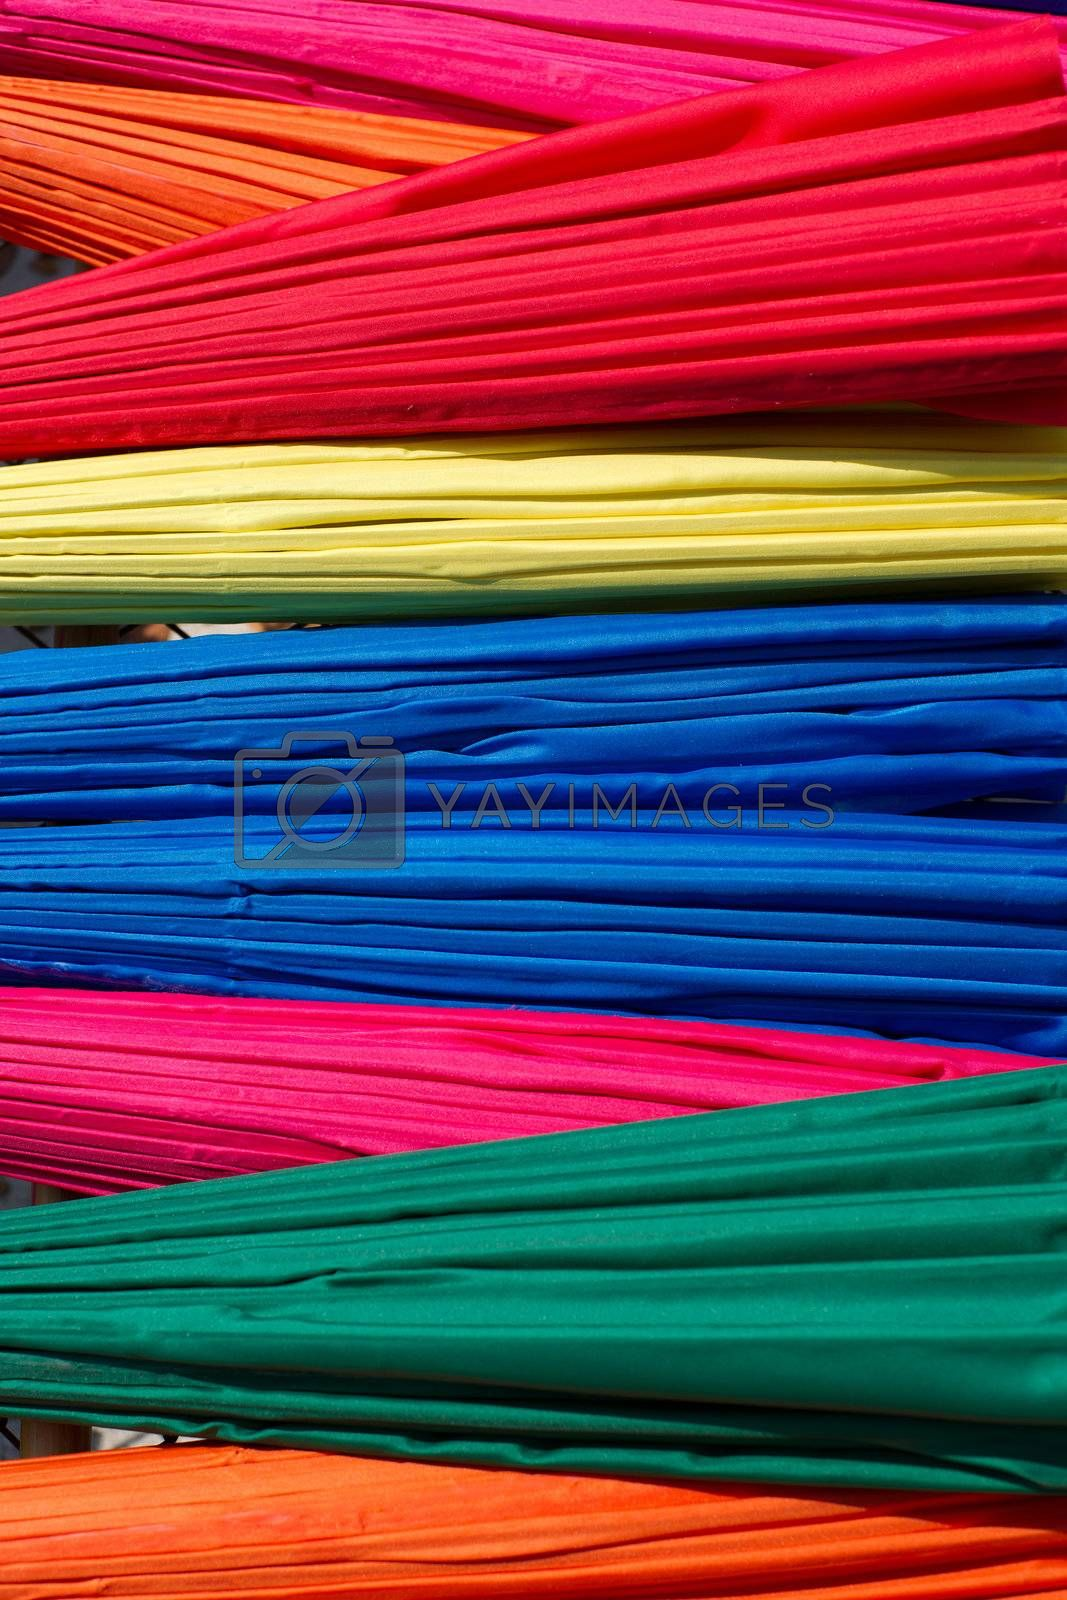 Background from closed multicolored umbrellas made in Bo Sang village, Chiang Mai province, Thailand